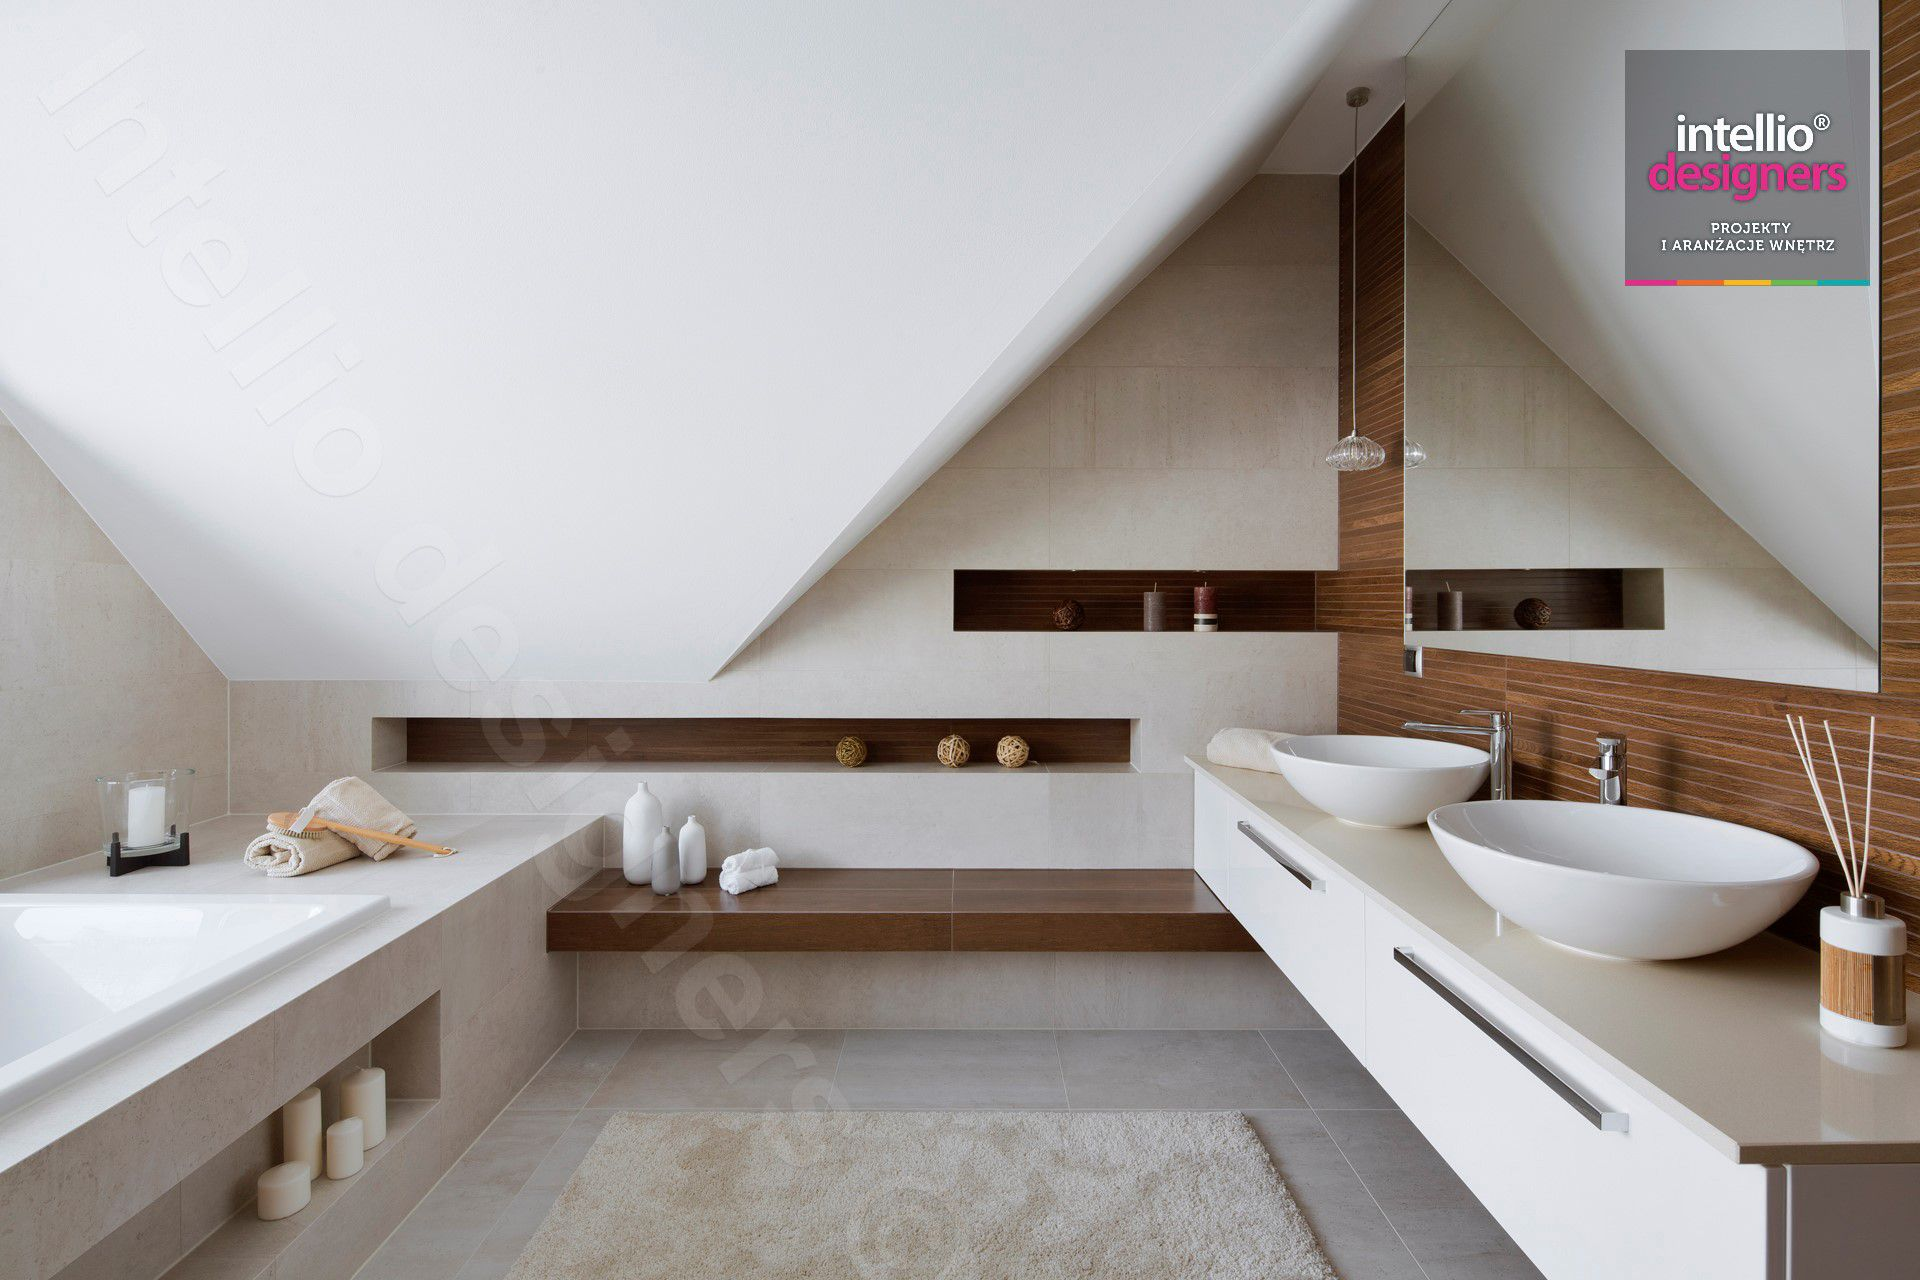 The best interior designs of Intellio - a house in the mountains, luxurious interiors of the living room, bathrooms, dining room